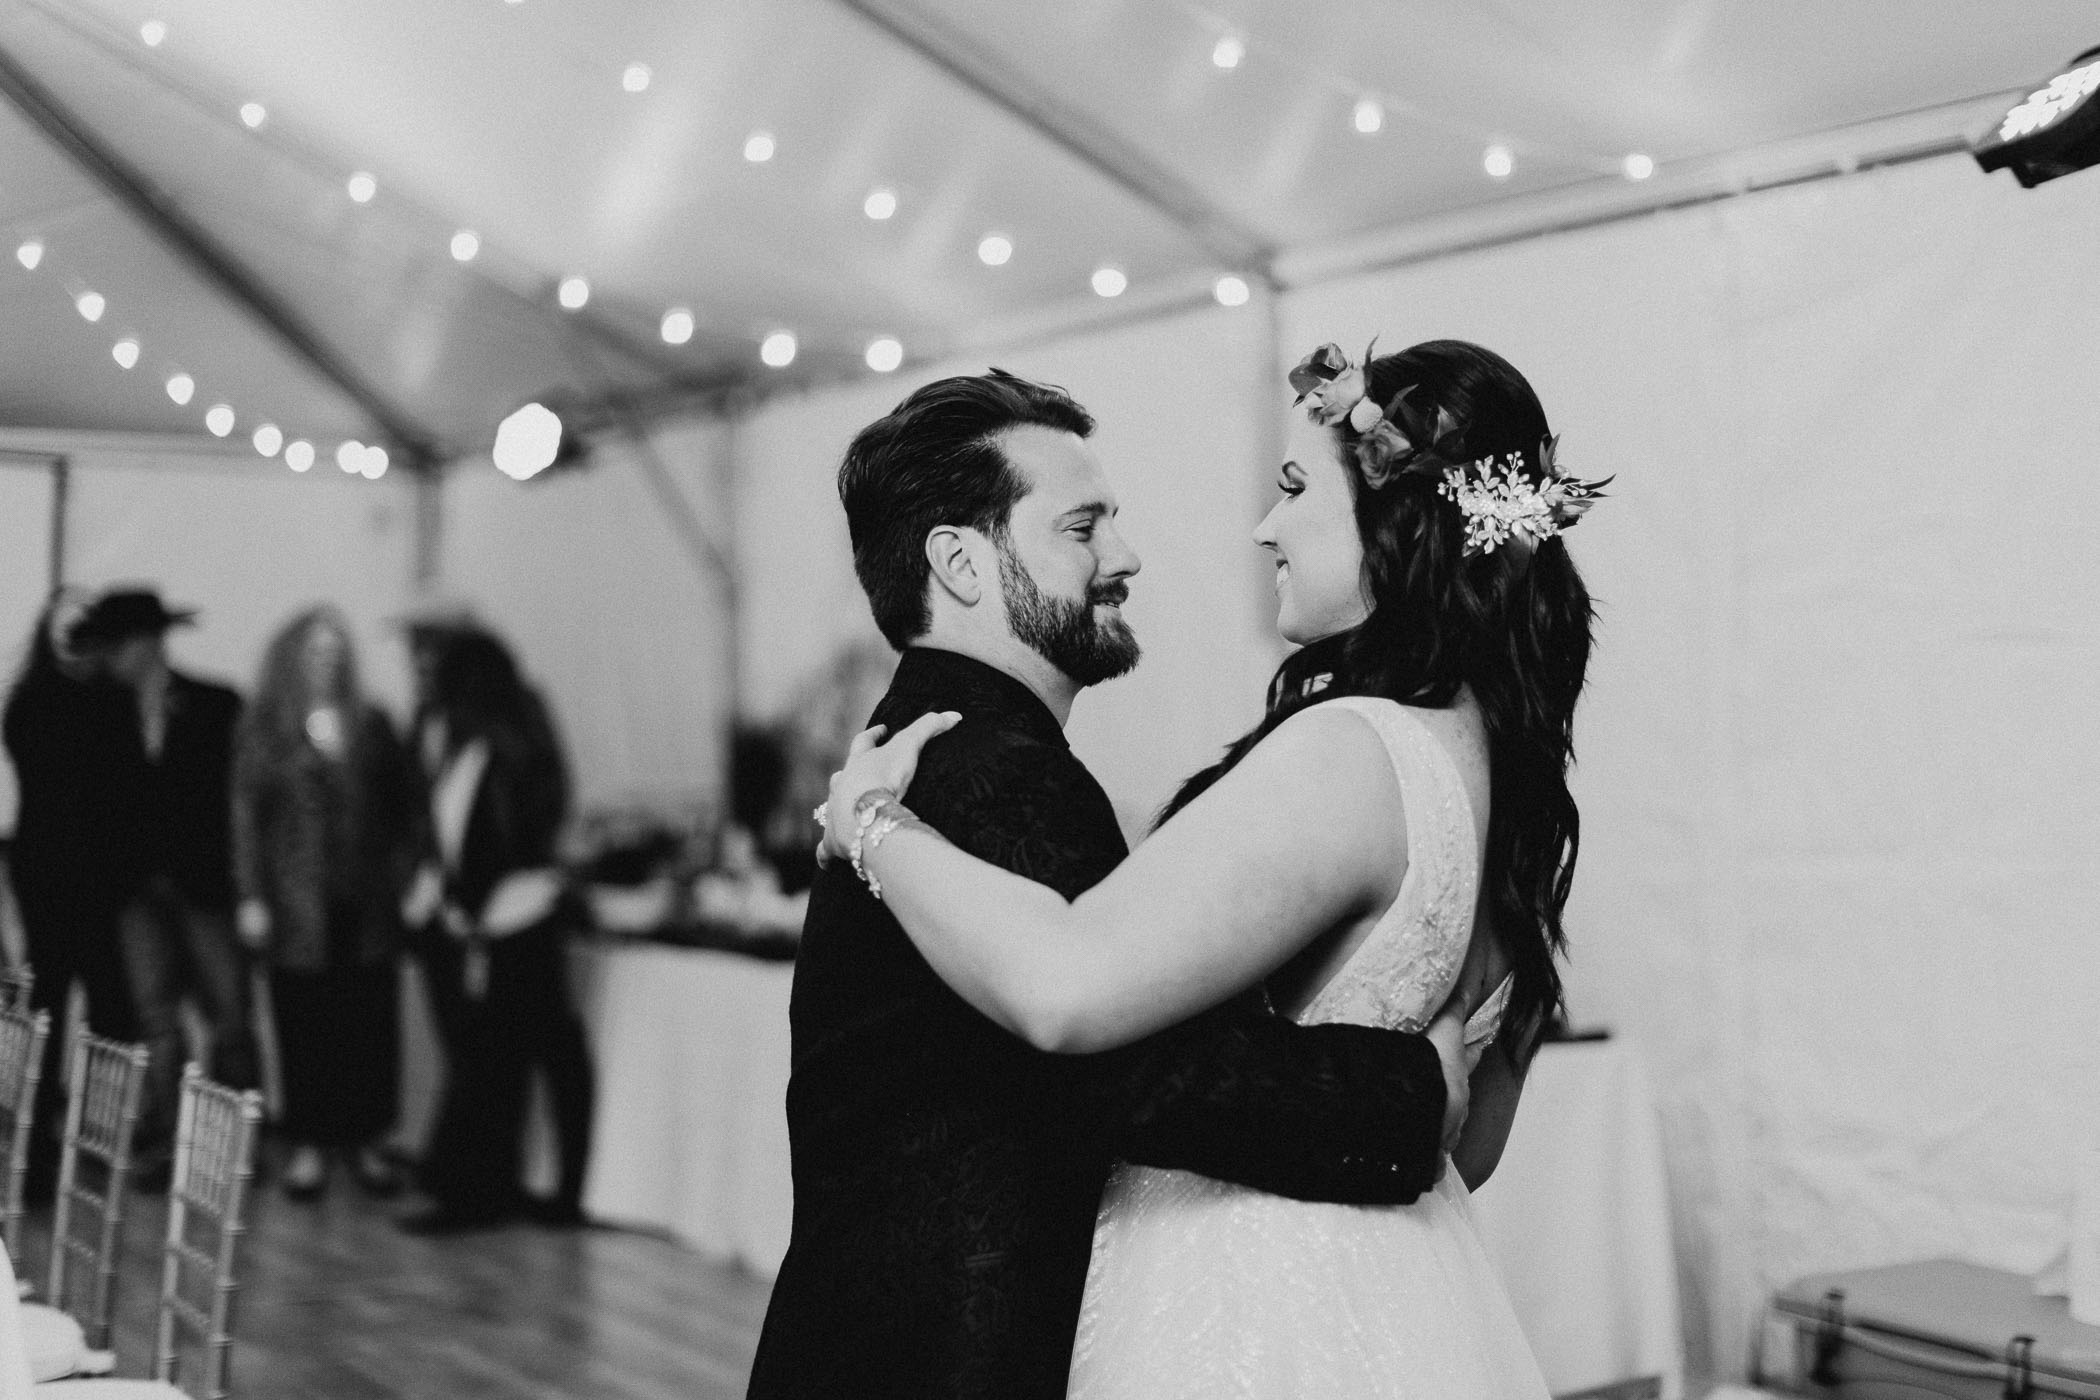 Black and white image of first dance at wedding reception